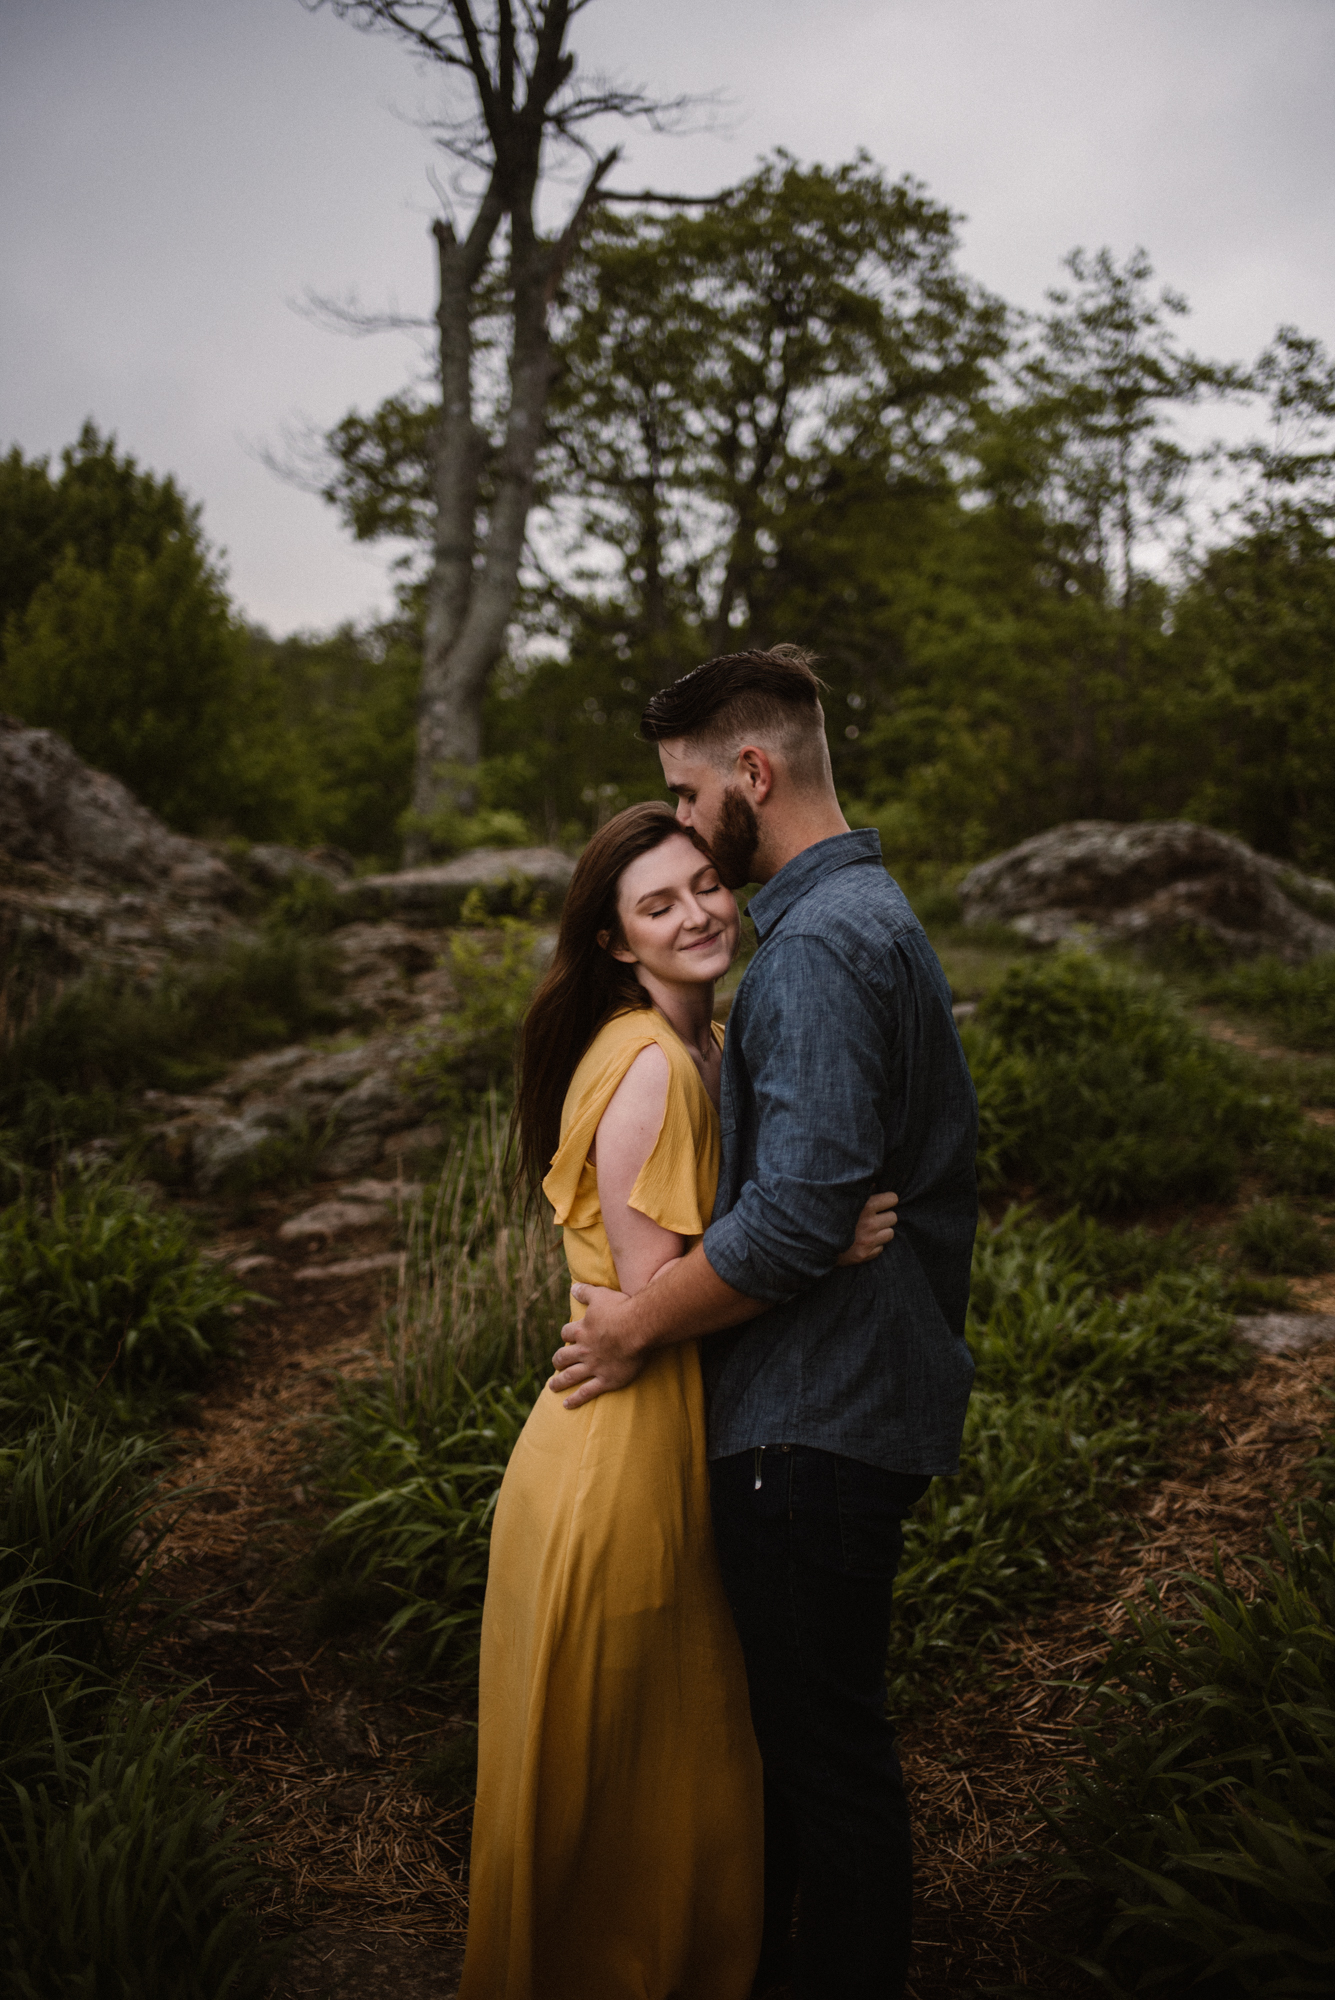 Camryn and Larry Sunrise Engagement Session in Shenandoah National Park - Things to Do in Luray Virginia - Adventurous Couple Photo Shoot White Sails Creative_16.jpg